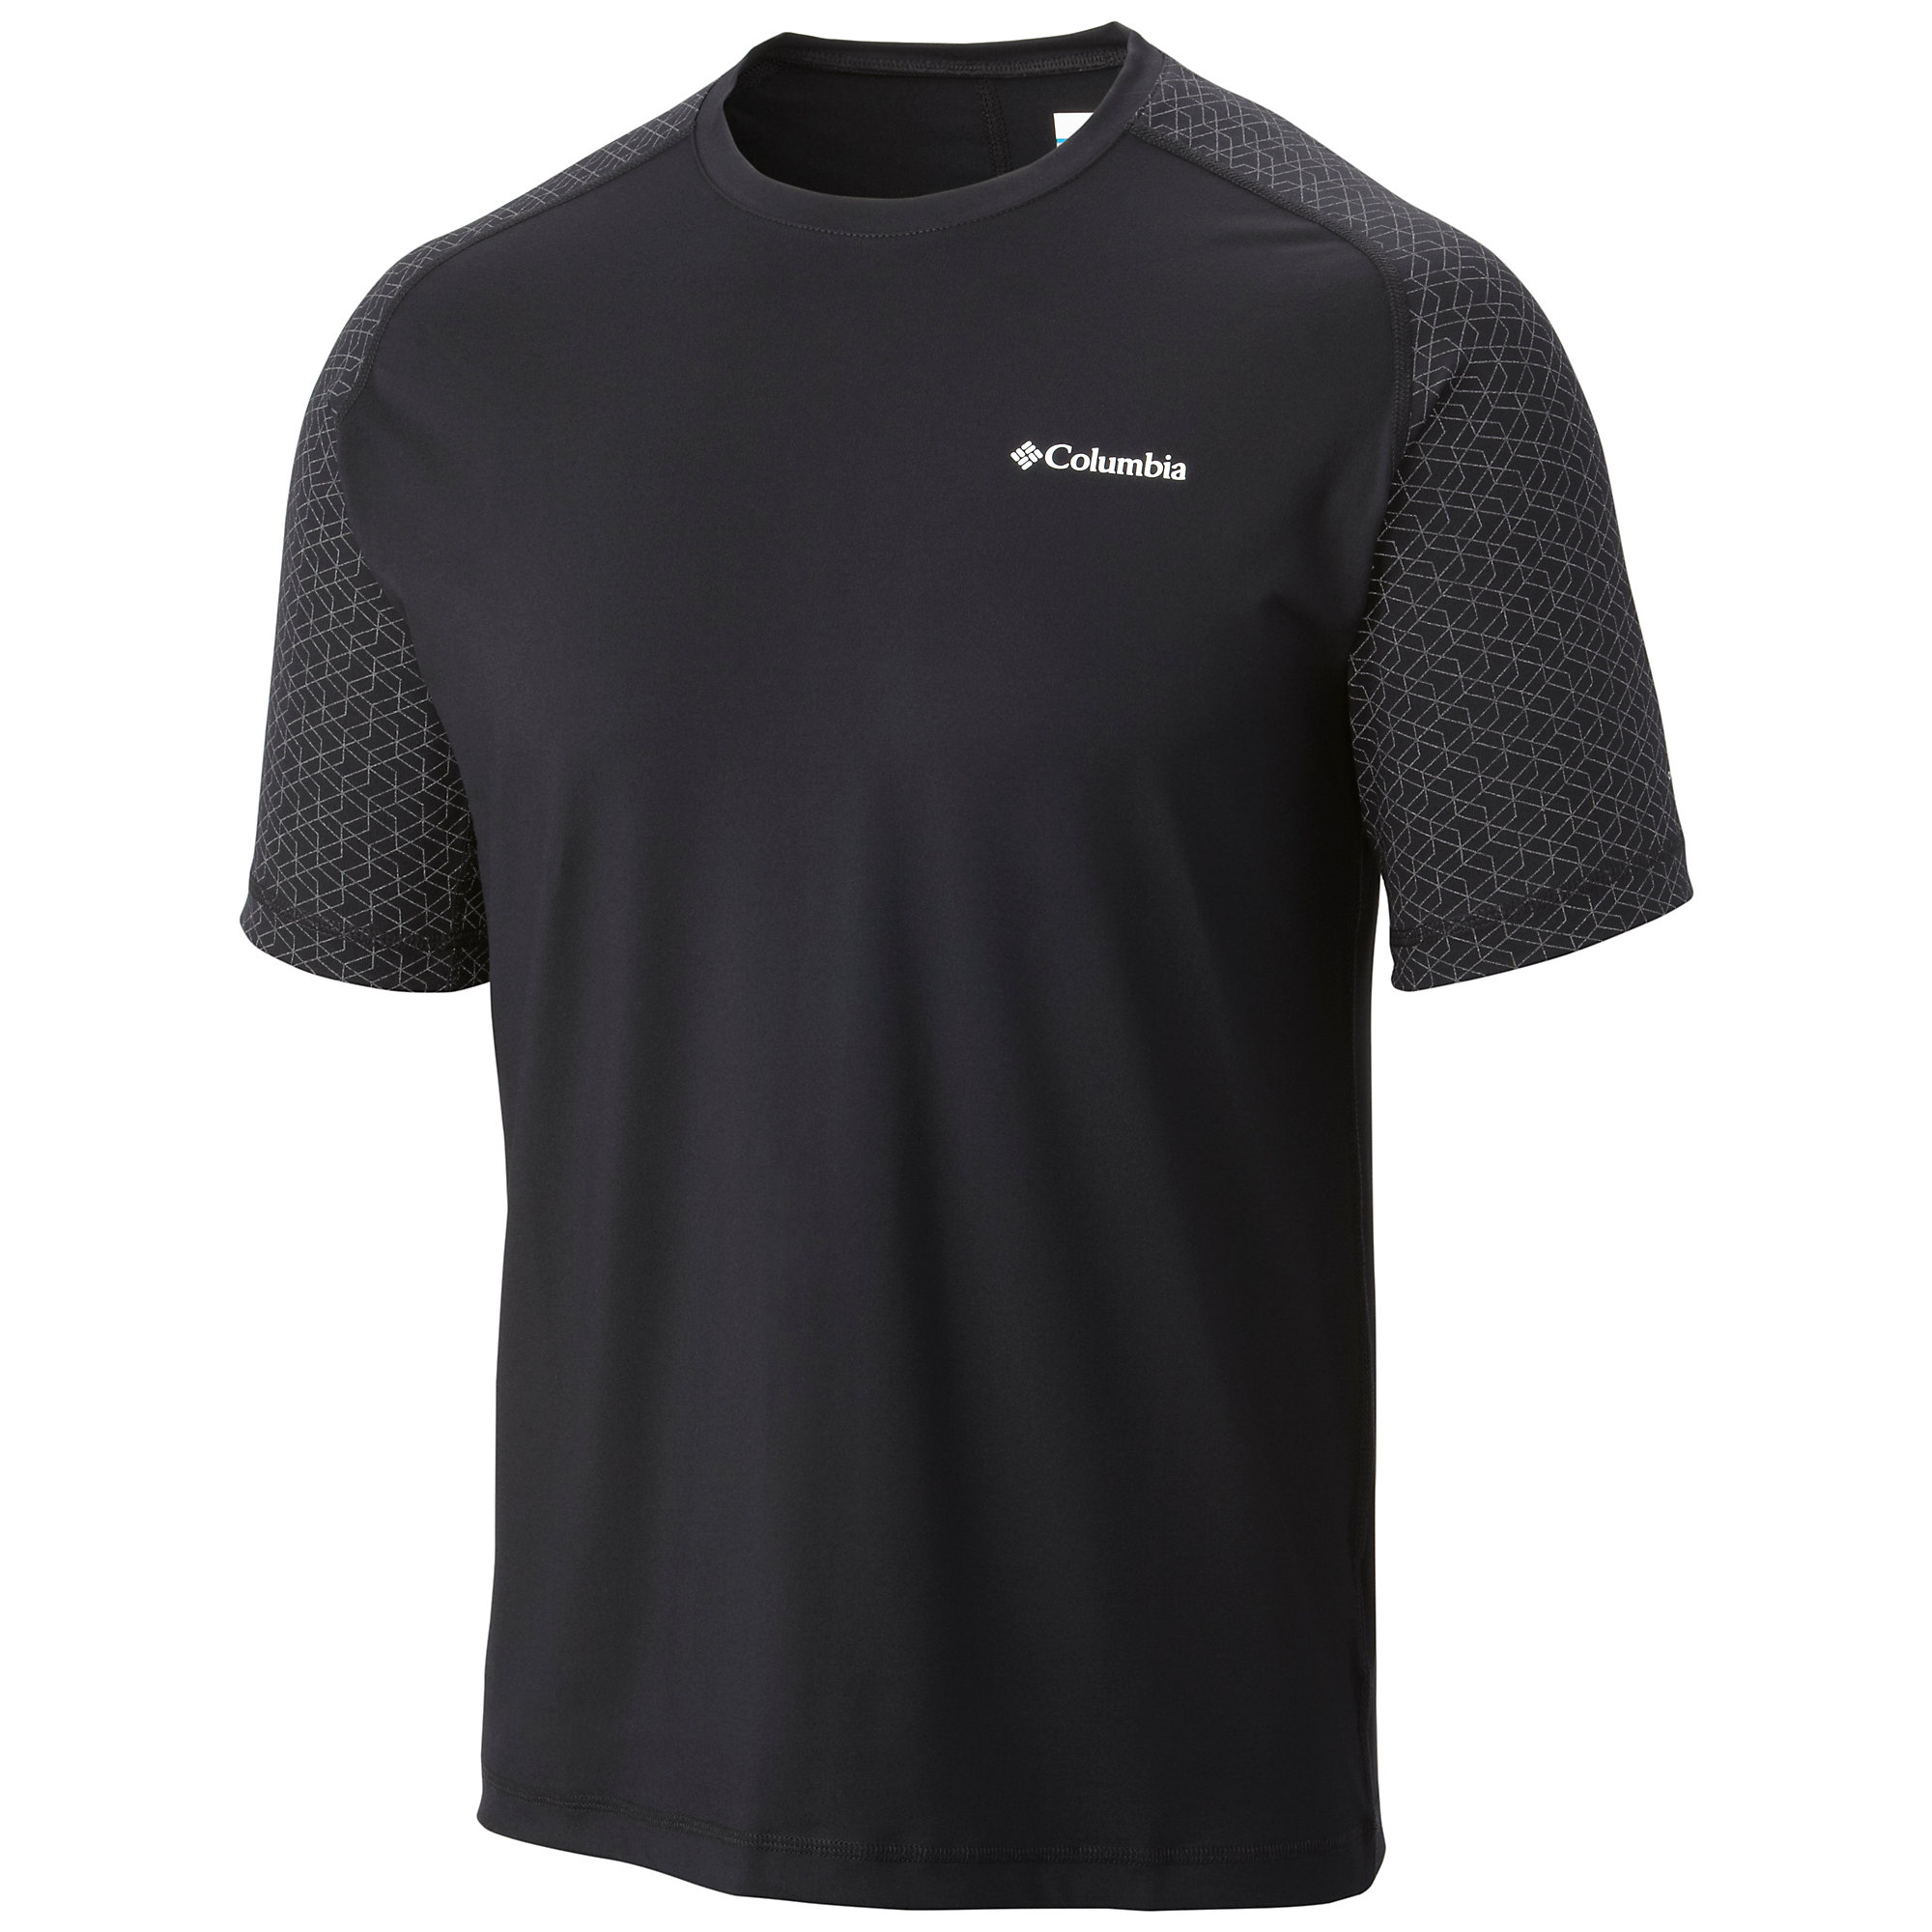 photo: Columbia Men's Trail Flash Short Sleeve Shirt short sleeve performance top